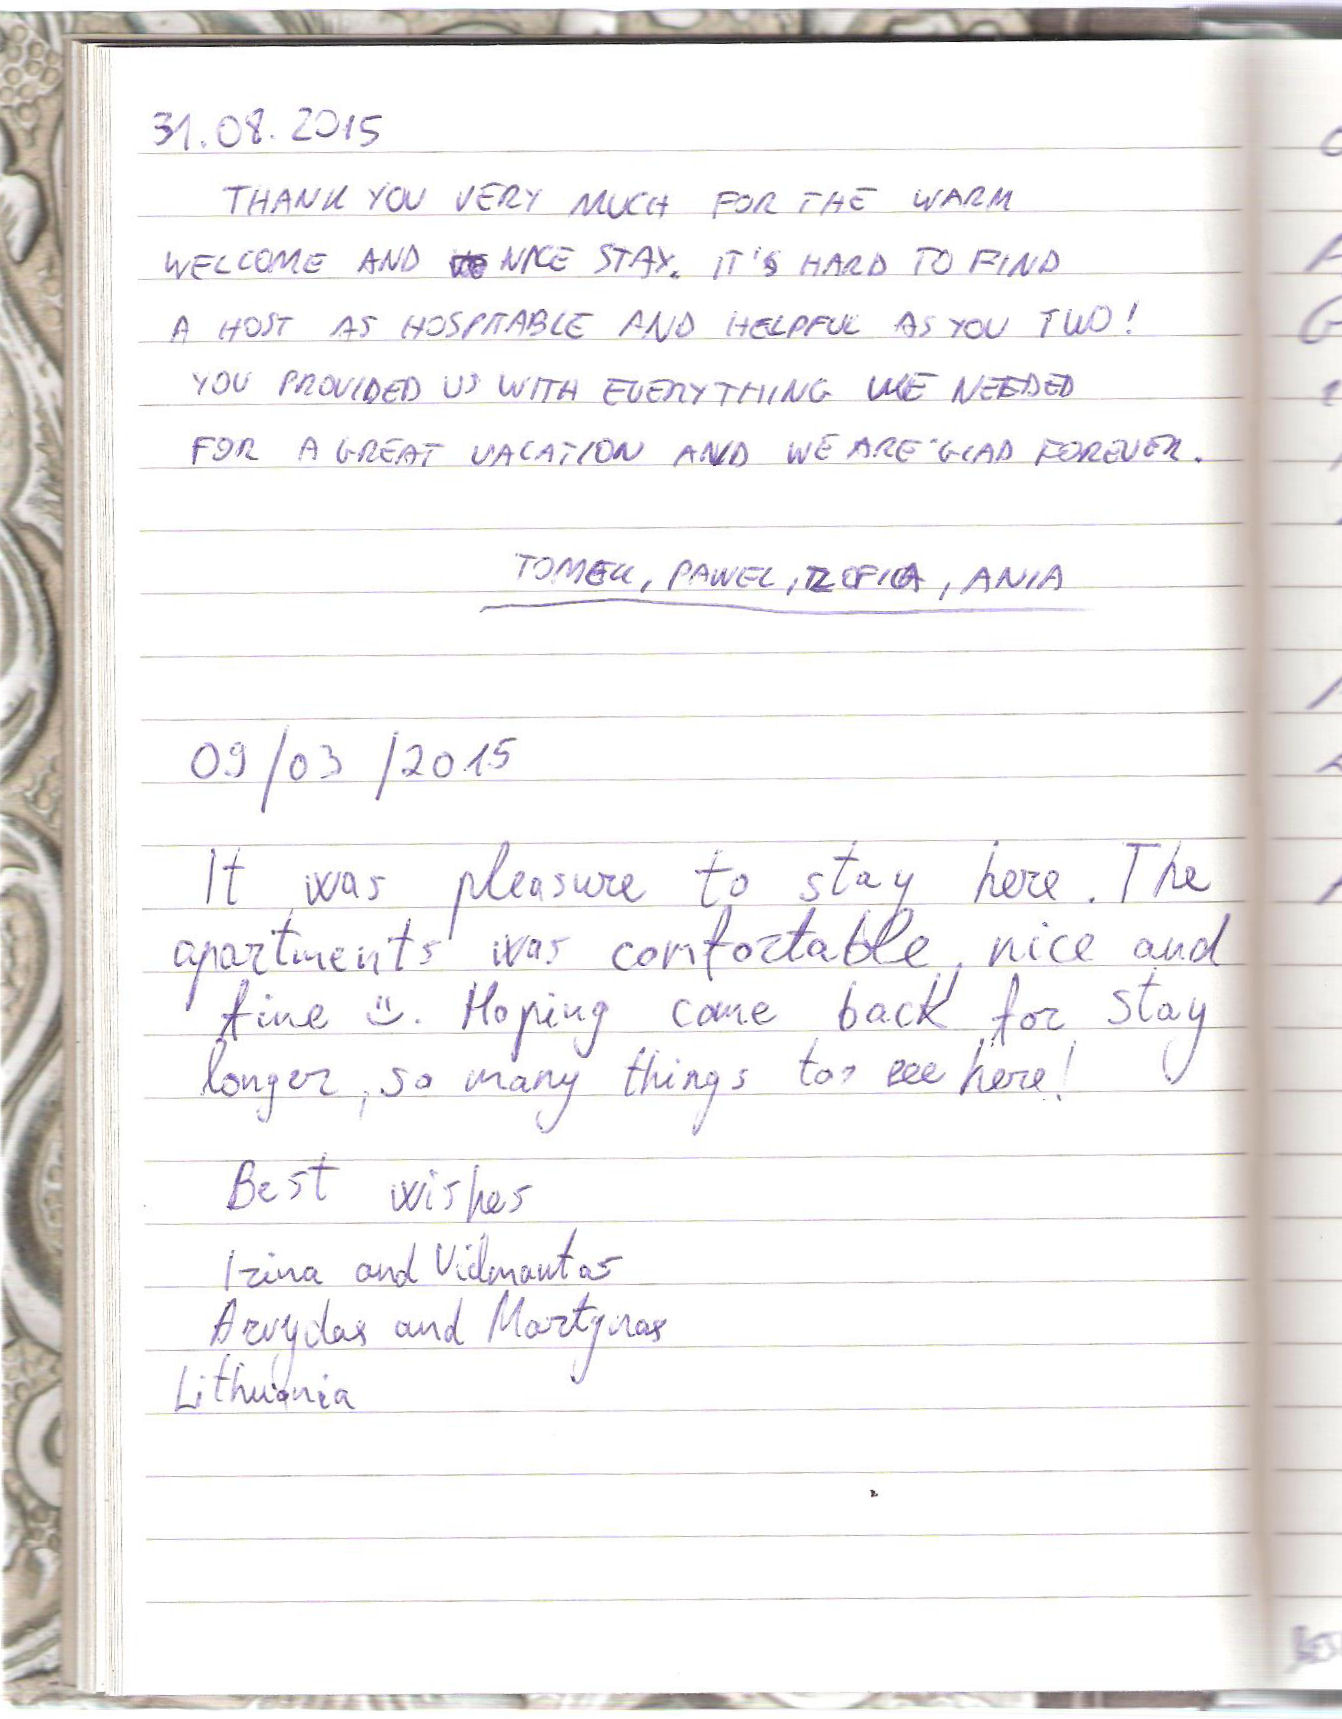 guestbook-page-026